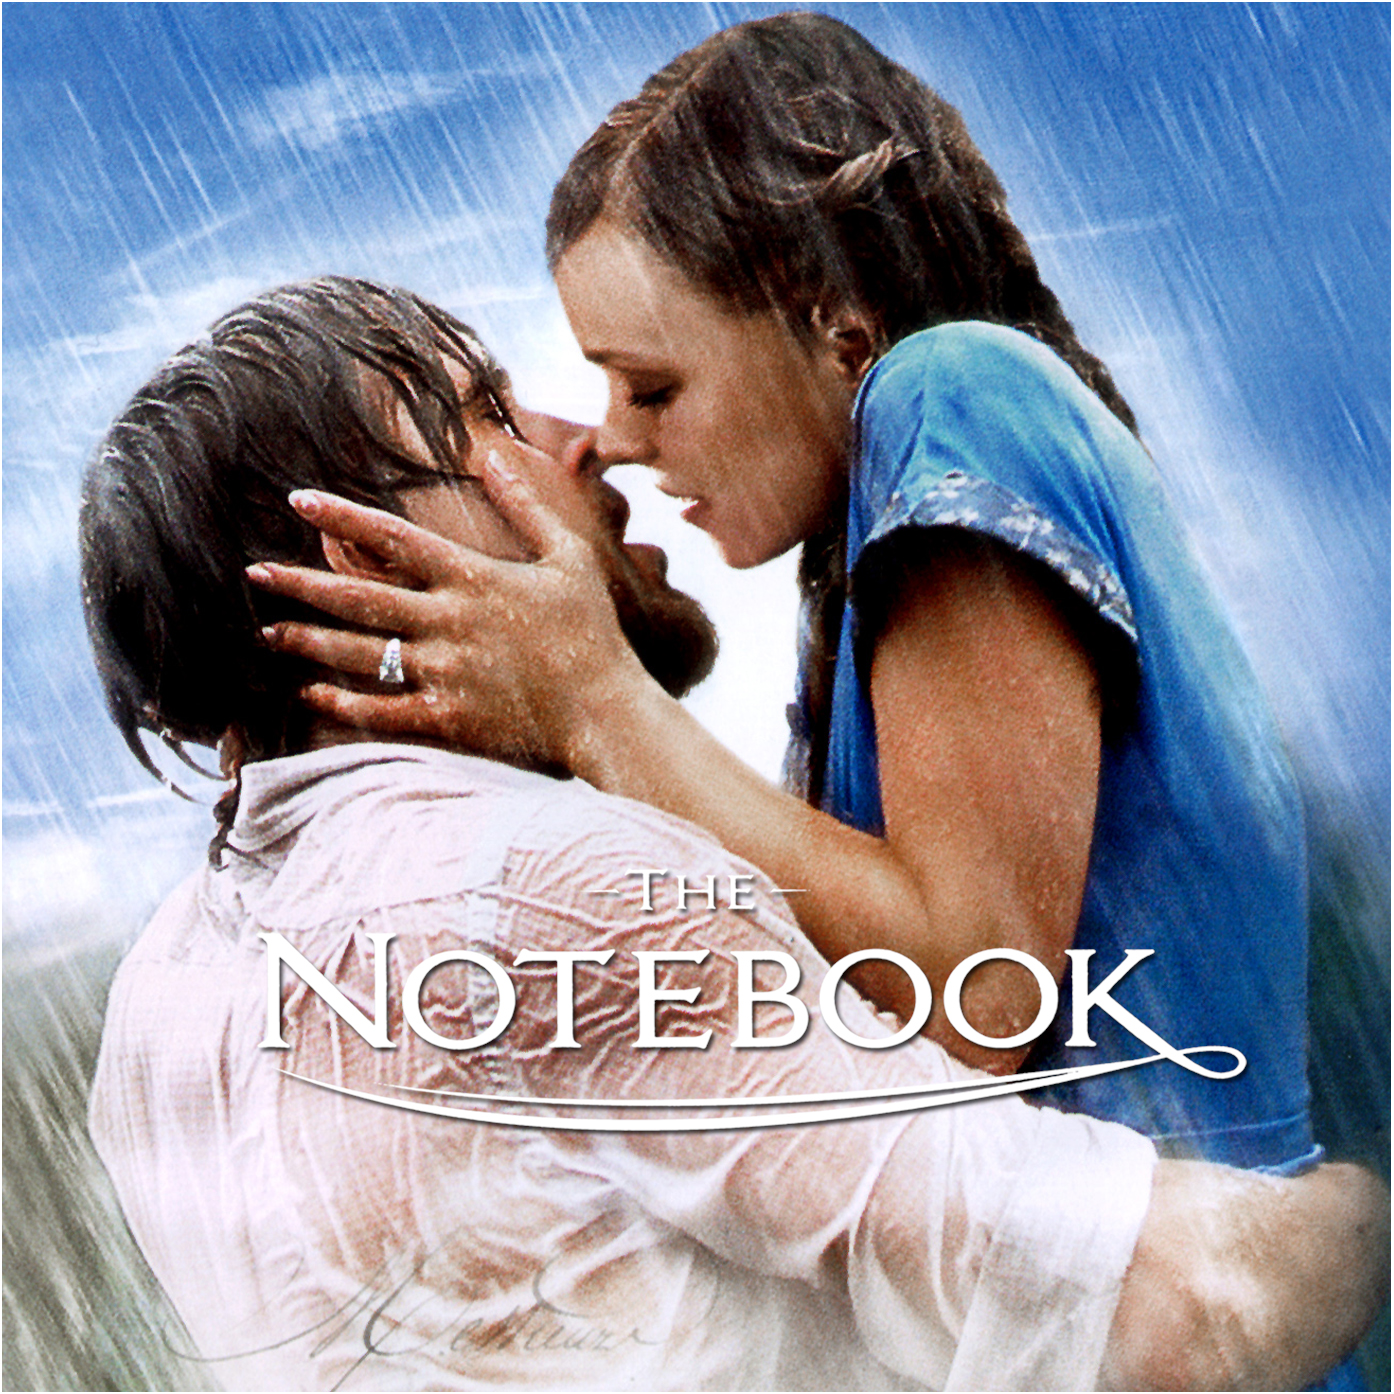 11 things about the notebook you never knew that will make it 11 things about the notebook you never knew that will make it even more r tic